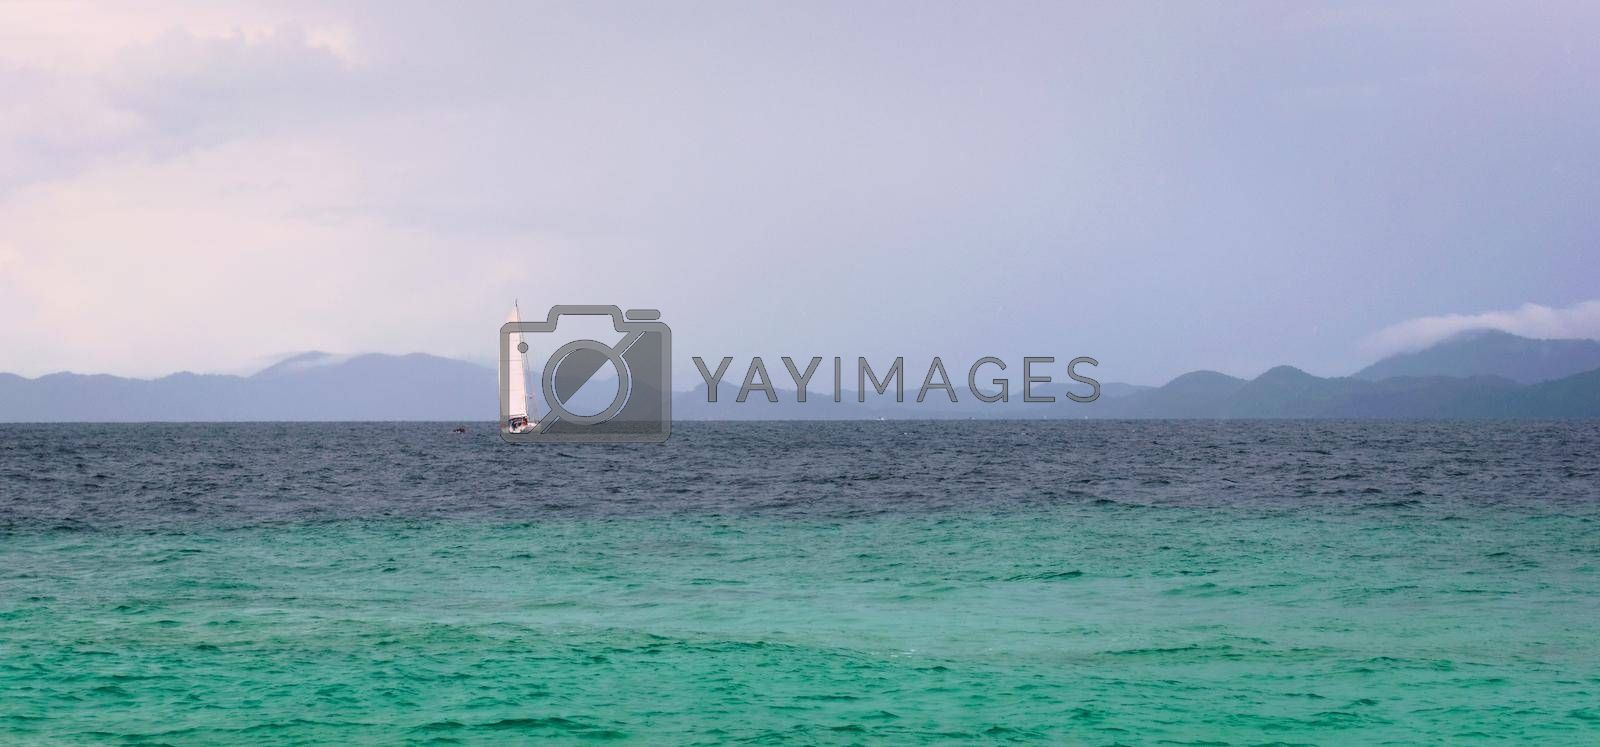 Royalty free image of Sailboat on the turquoise waters of Andaman Sea, near Phuket, Thailand. by hernan_hyper